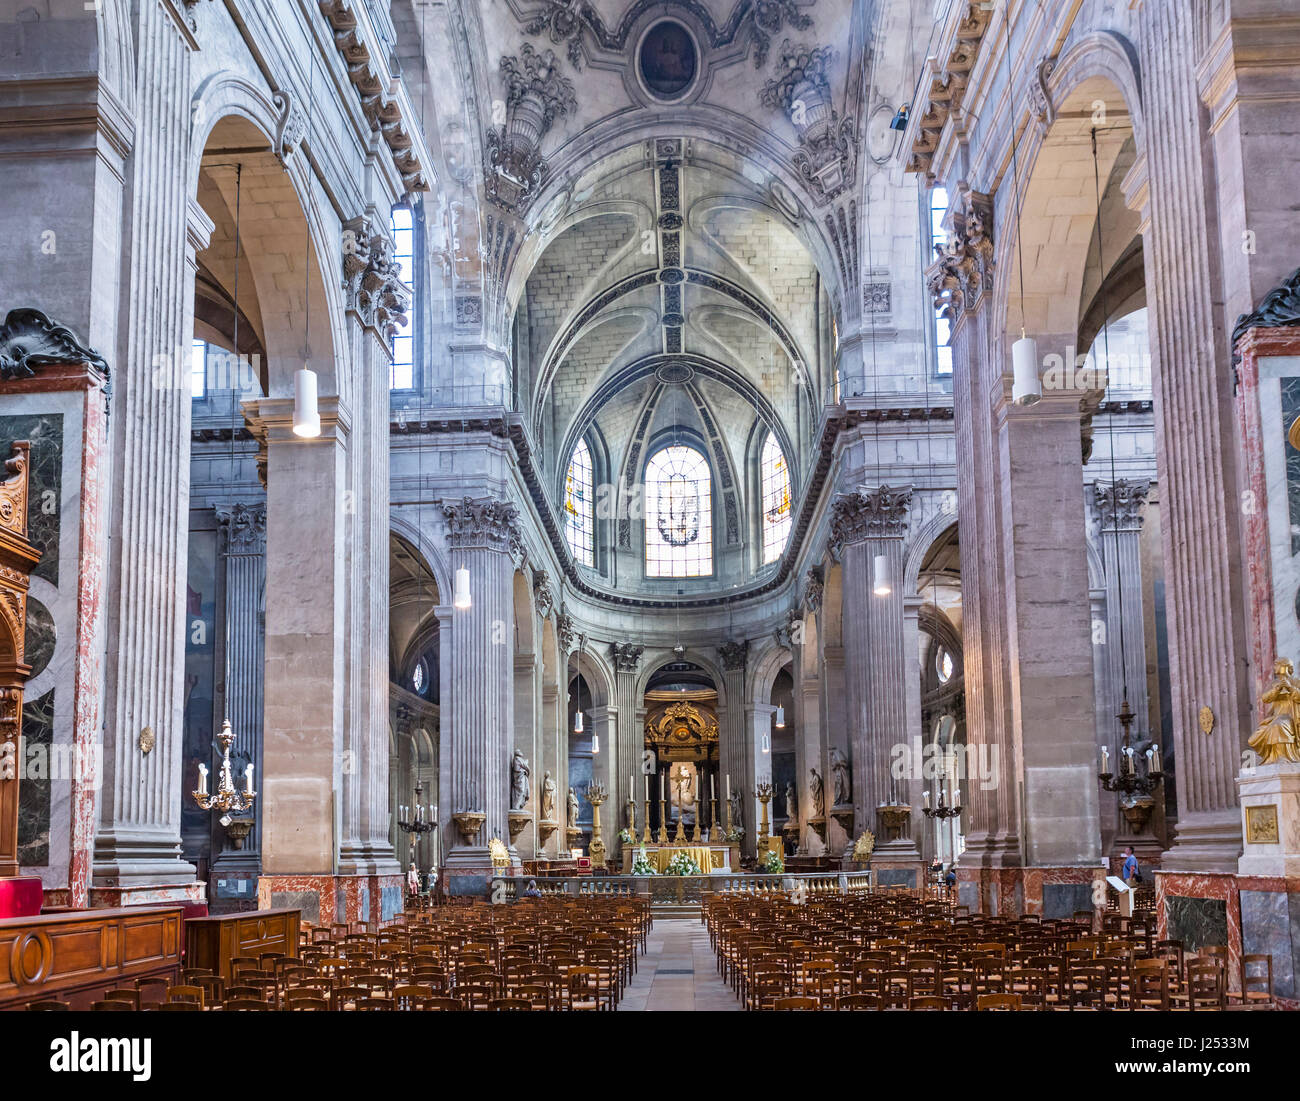 Intérieur de l'église de Saint-Sulpice, Paris, France Photo Stock